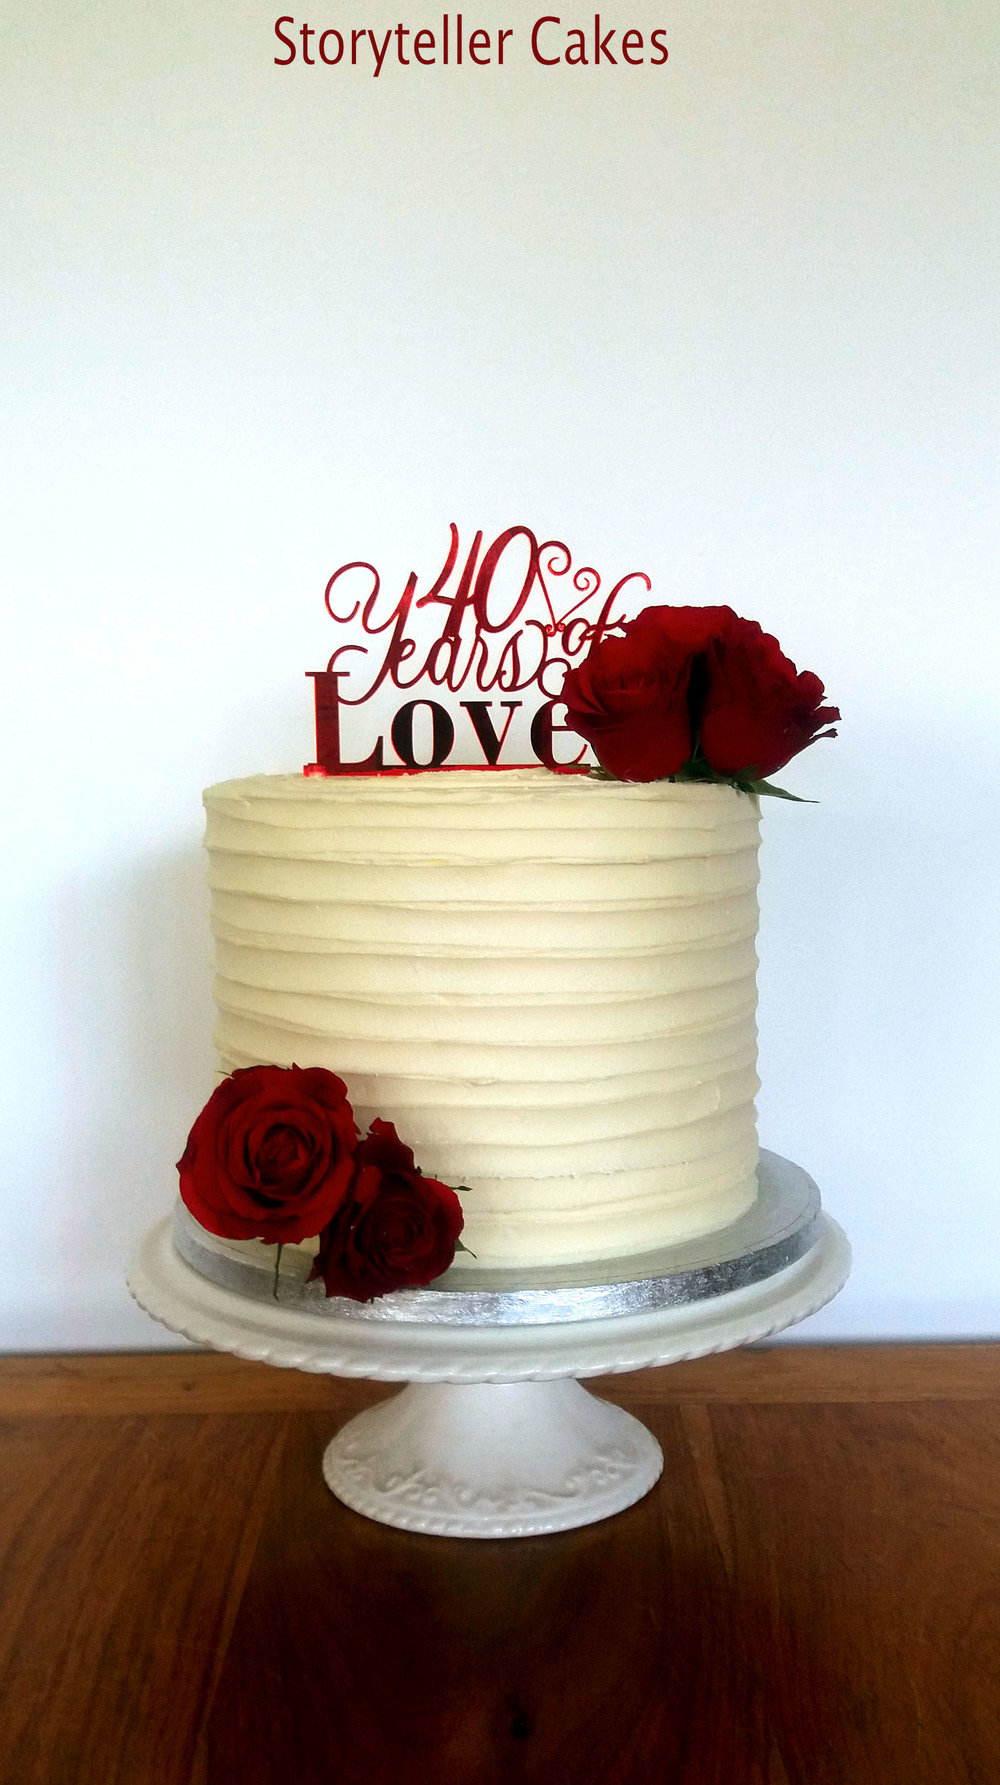 Red Velvet 40th Anniversary Cake 1.jpg